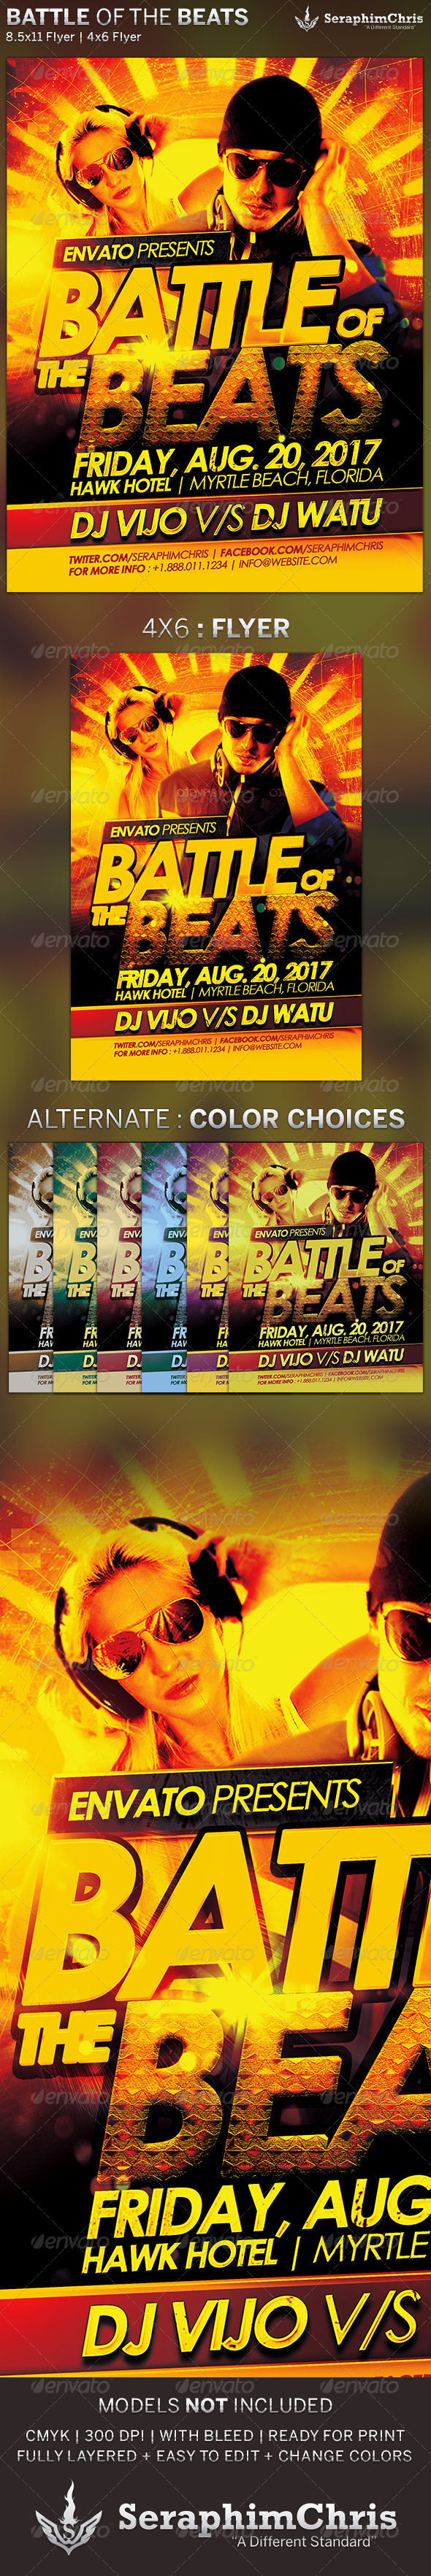 Battle of The Beats: Event Flyer Template - Events Flyers